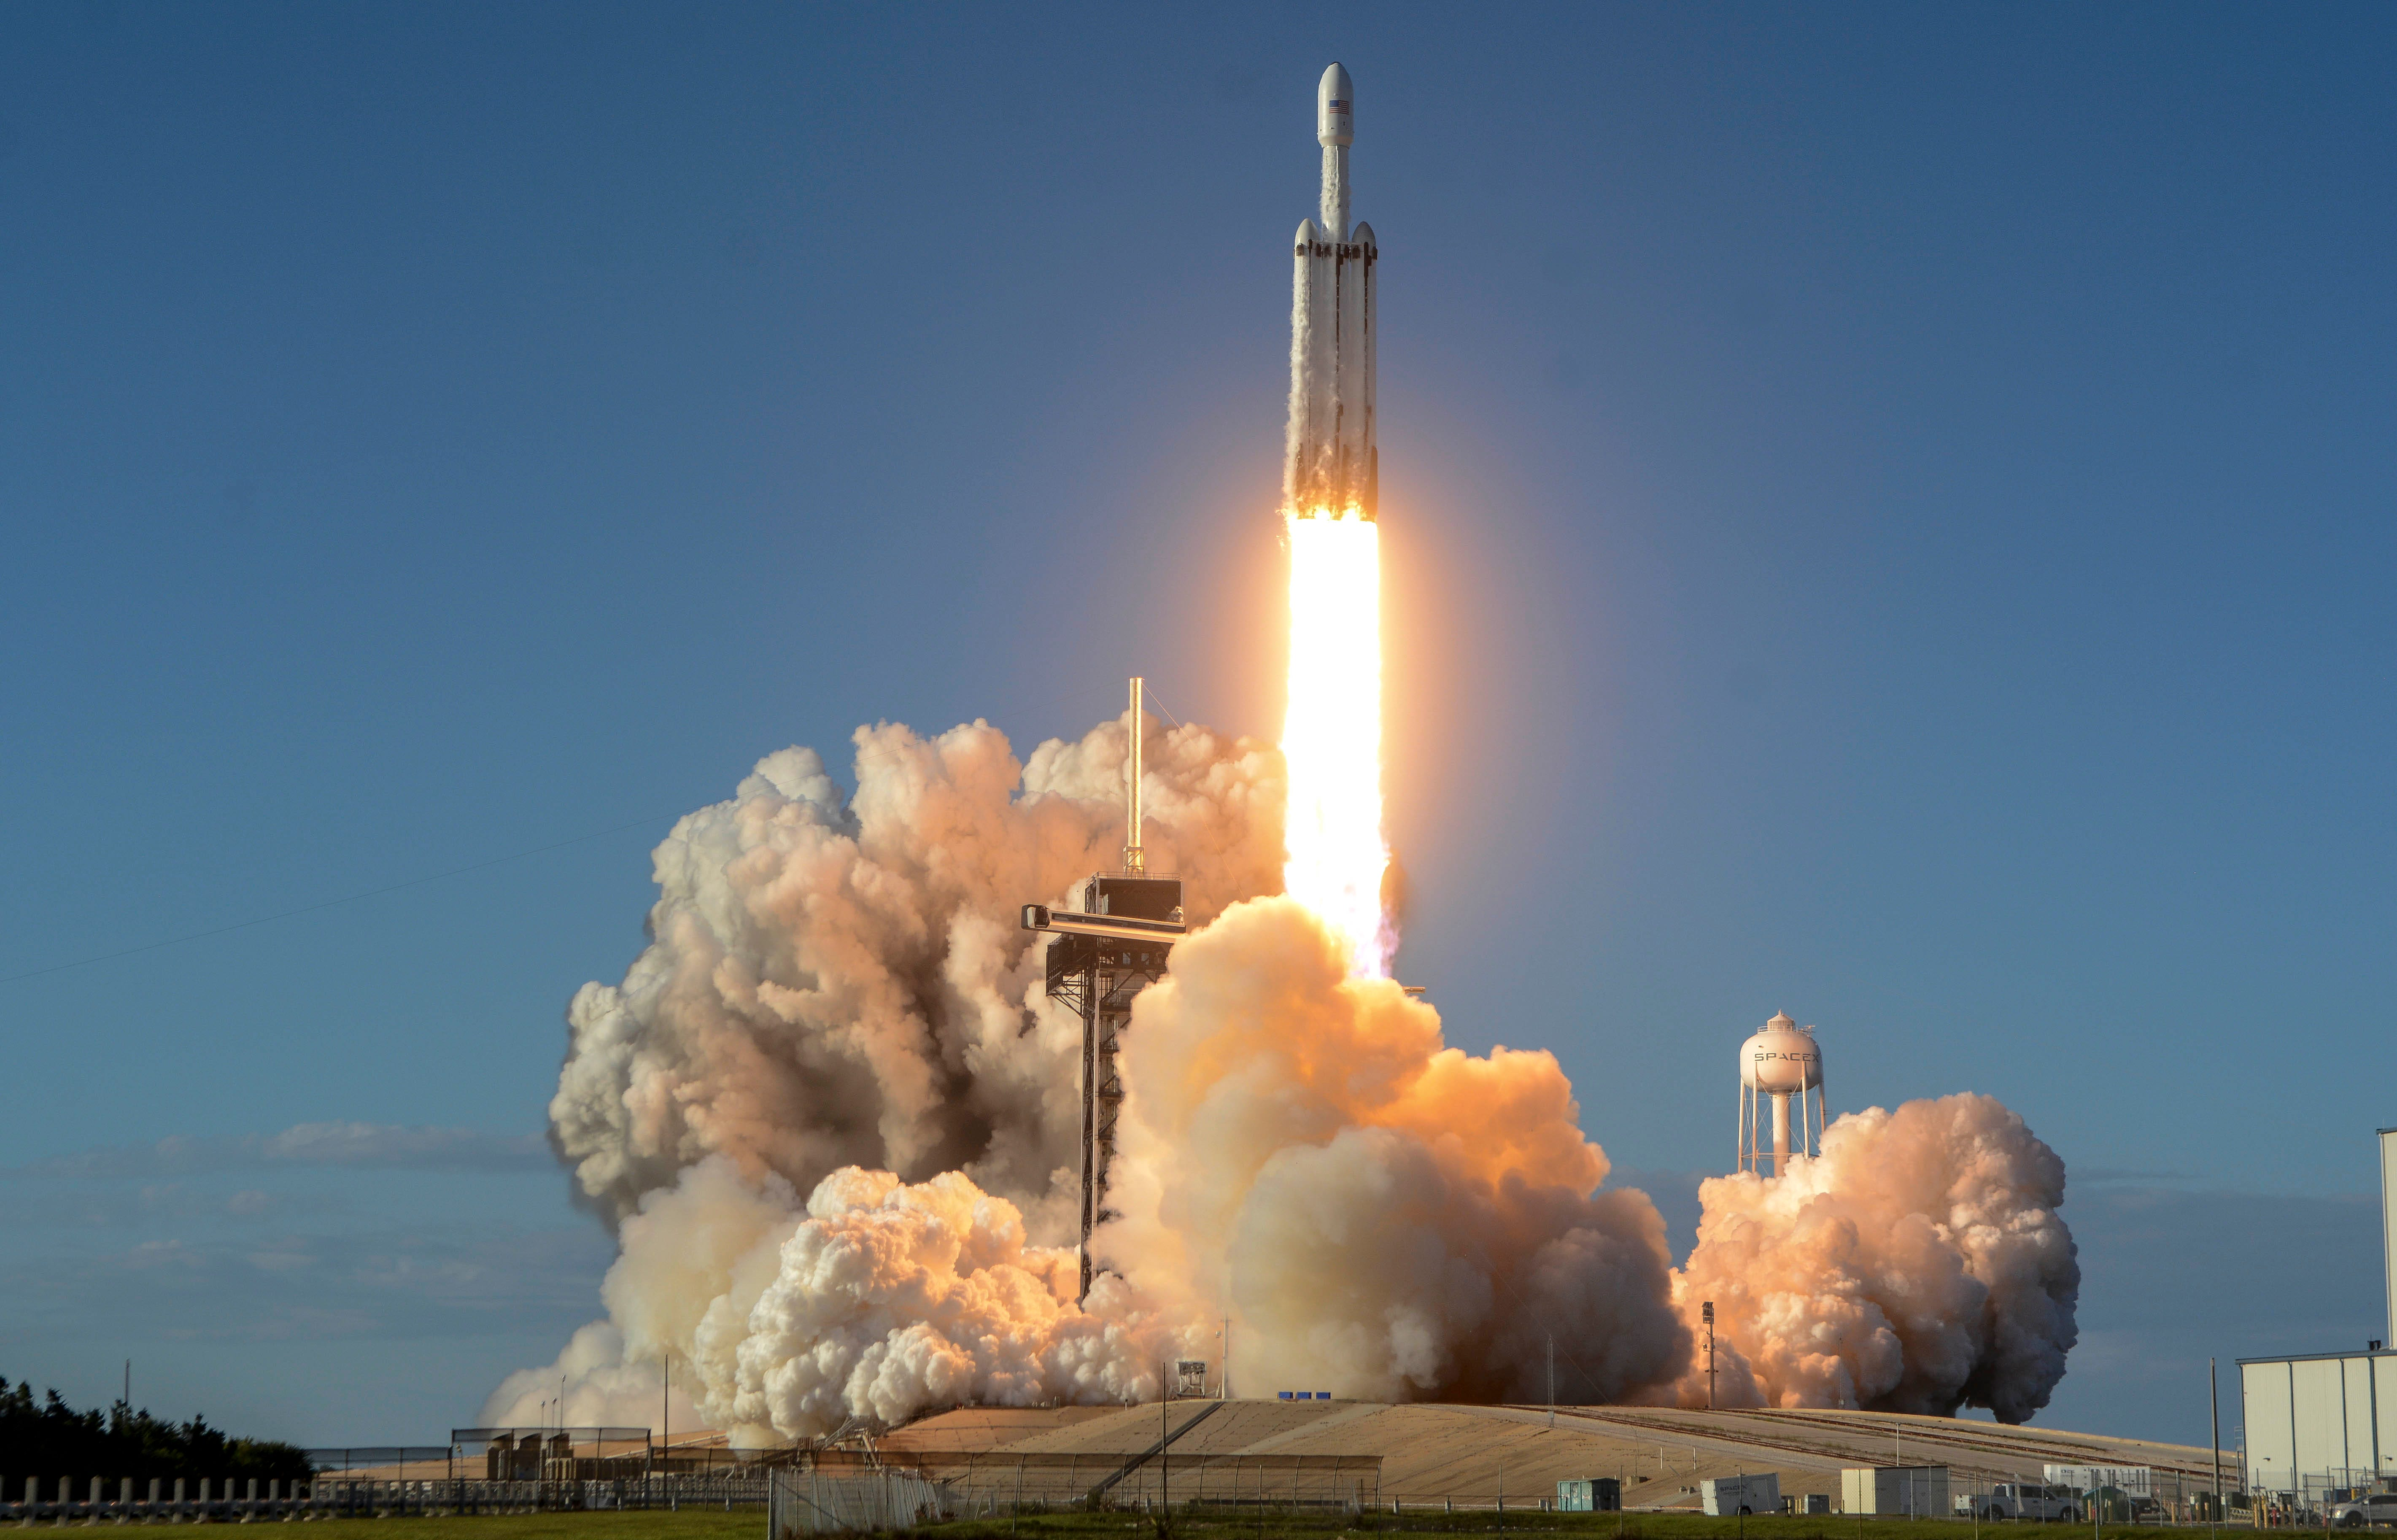 SpaceX Falcon Heavy: Why everyone should watch this night launch from Kennedy Space Center